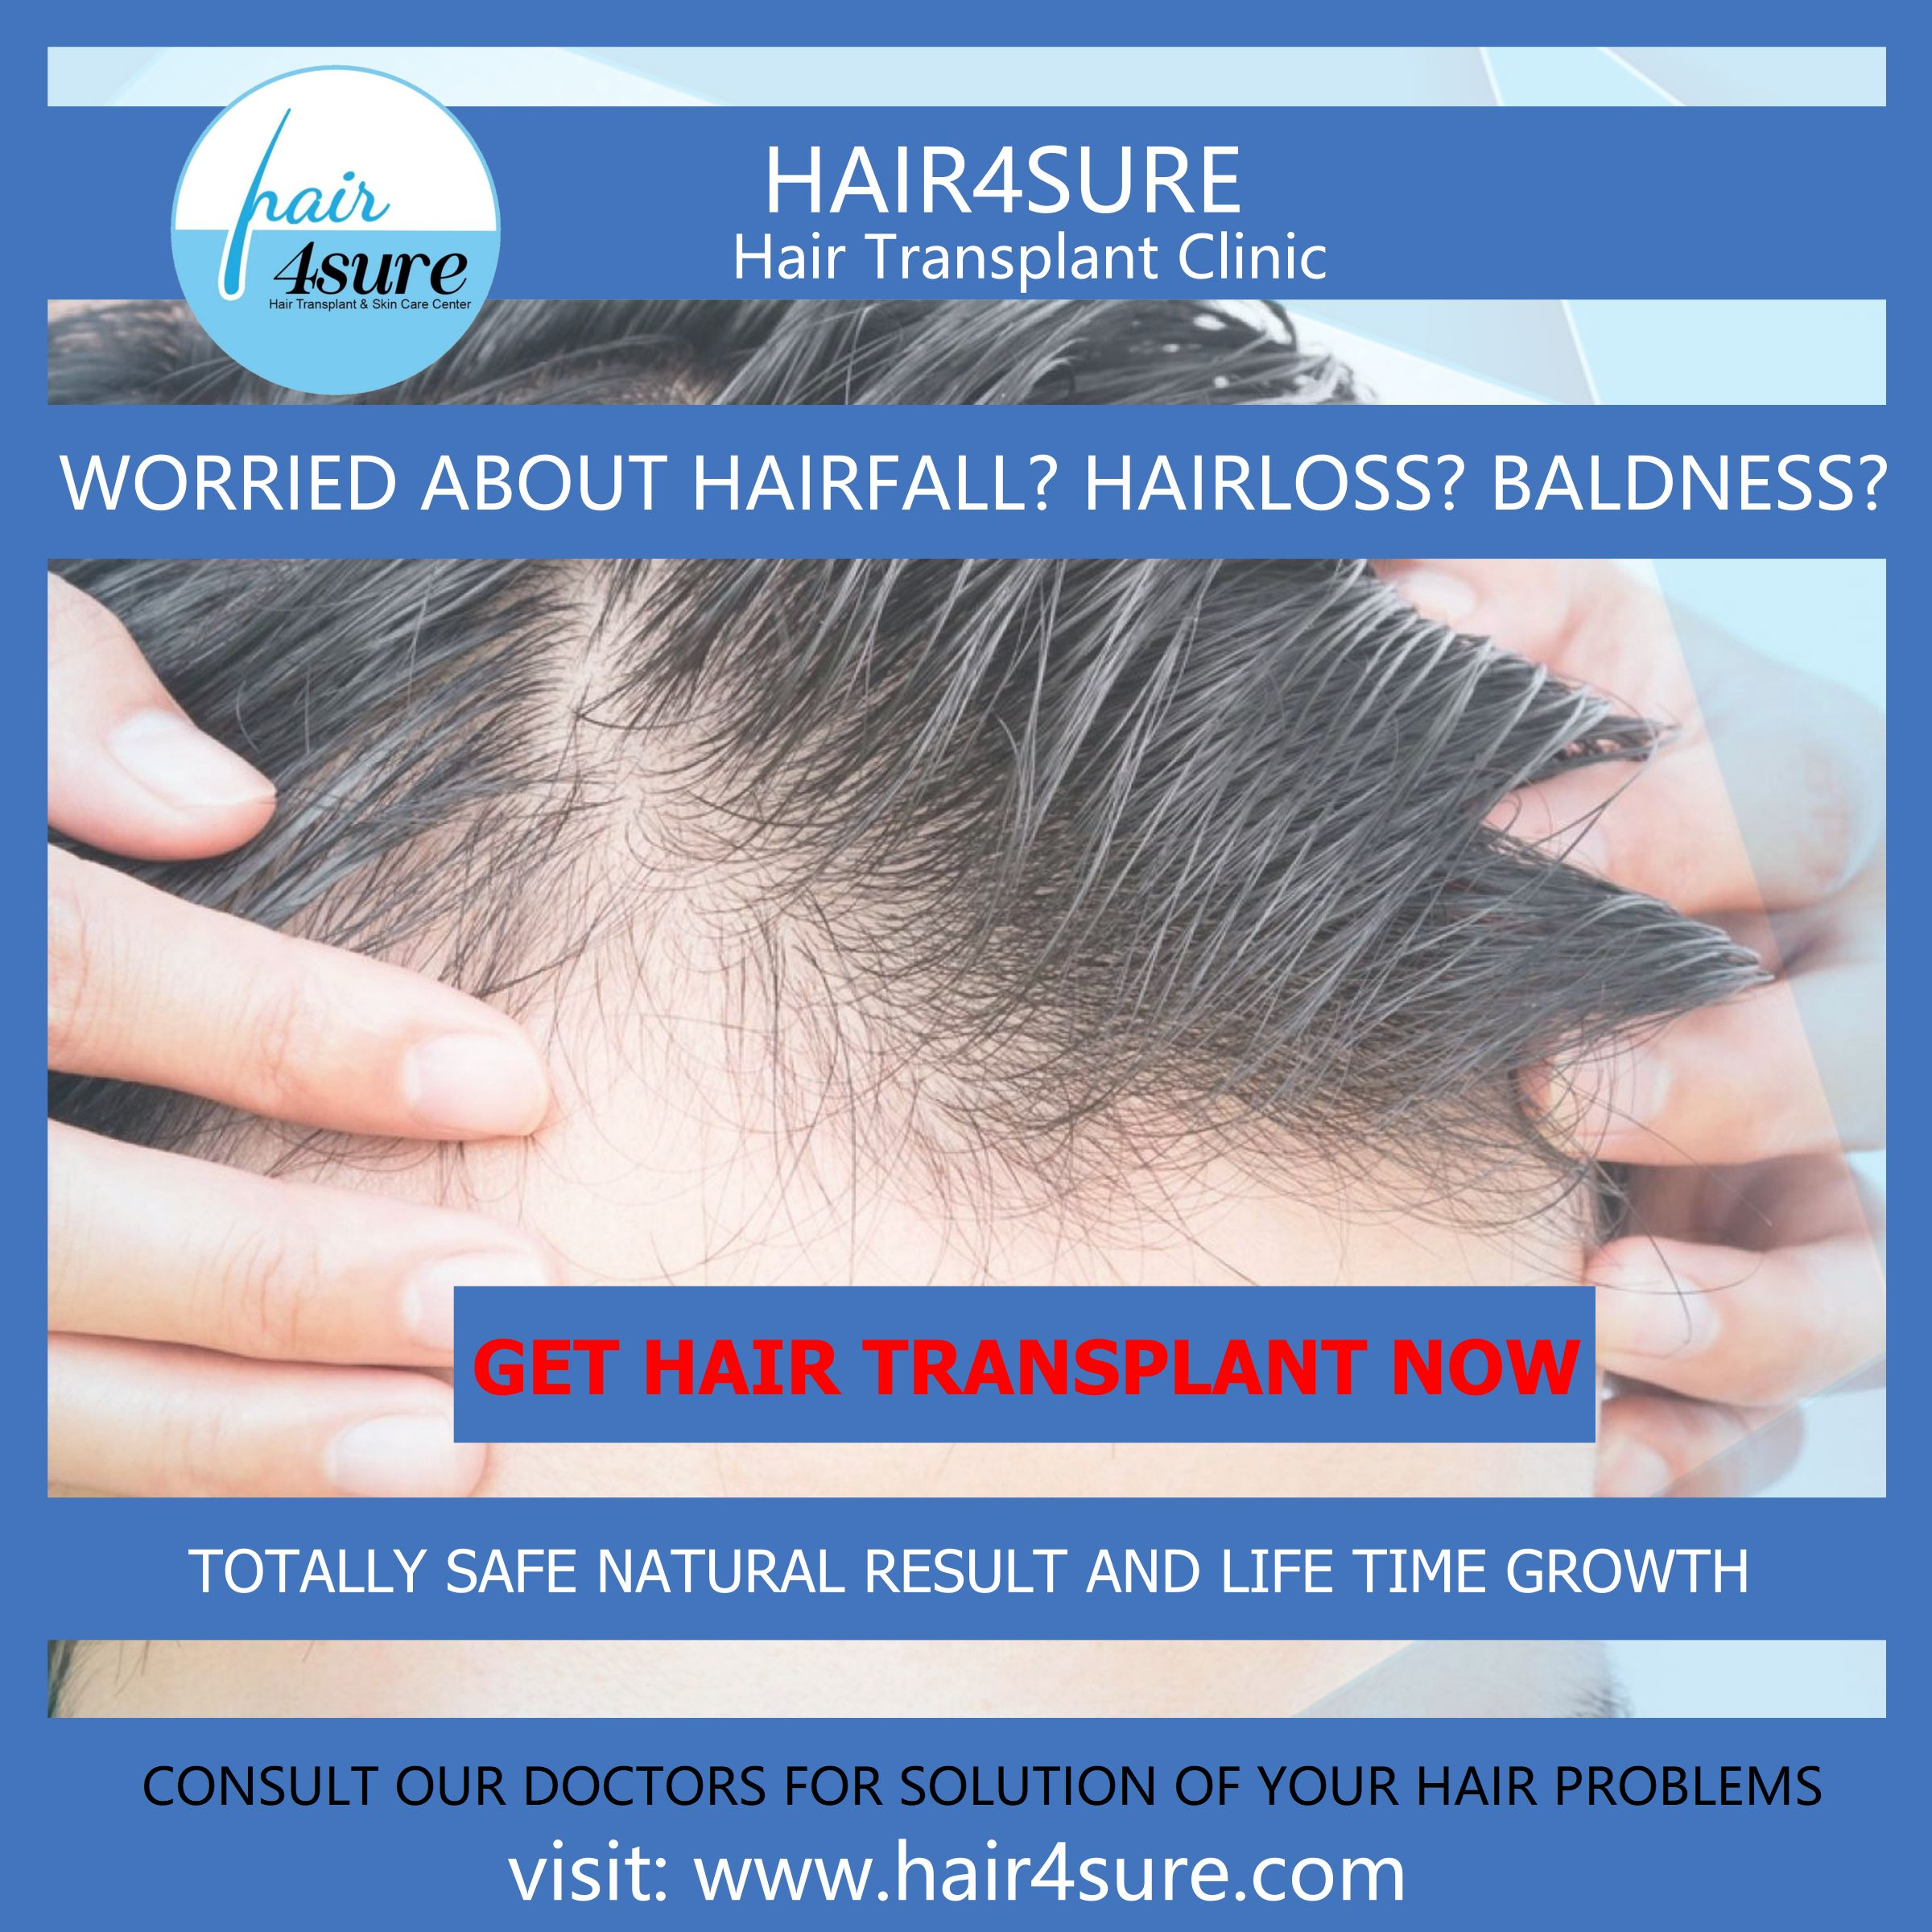 With Hair4sure Restore Your Hair In 2020 Hair Transplant Your Hair Hair Problems